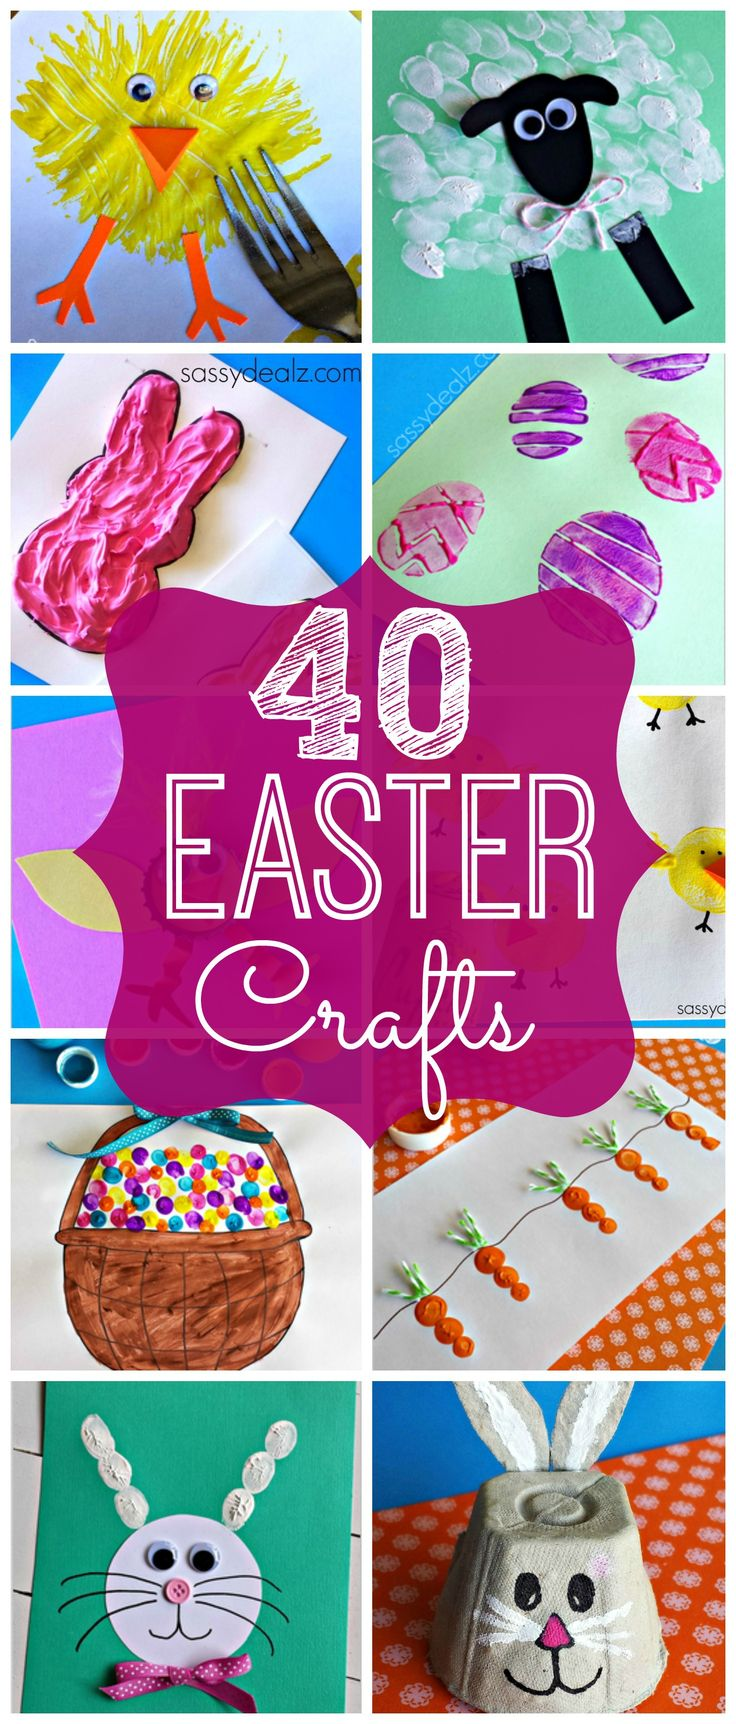 40 Easter Crafts for Kids #Easter art projects (Chicks, Sheep, Bunnies, Eggs, Carrots, and more!) | CraftyMorning.com